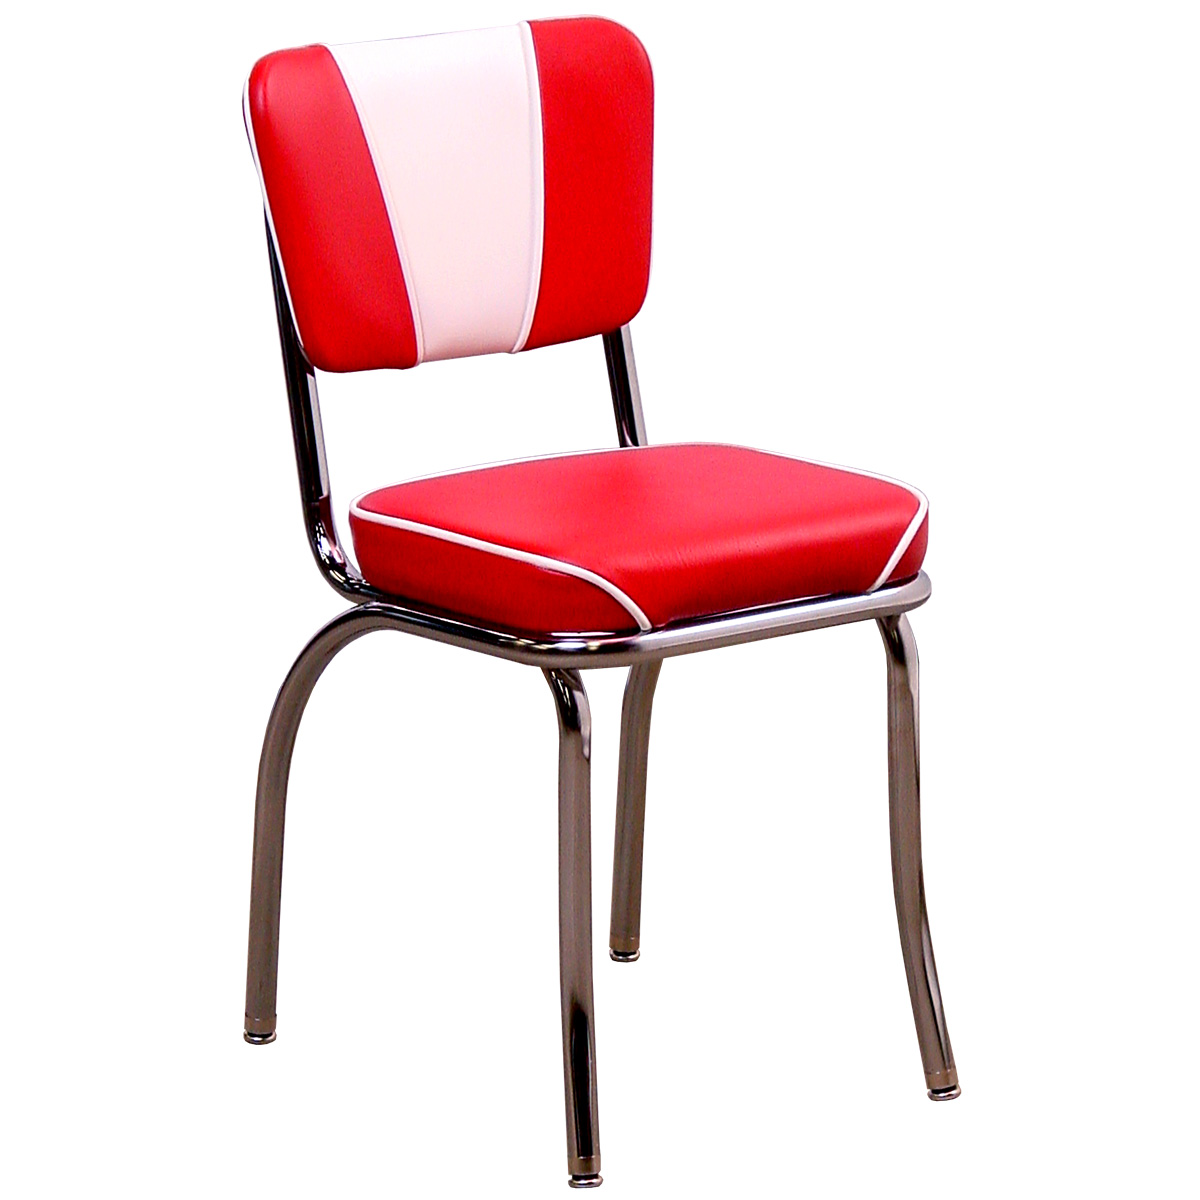 retro red kitchen chairs photo - 4